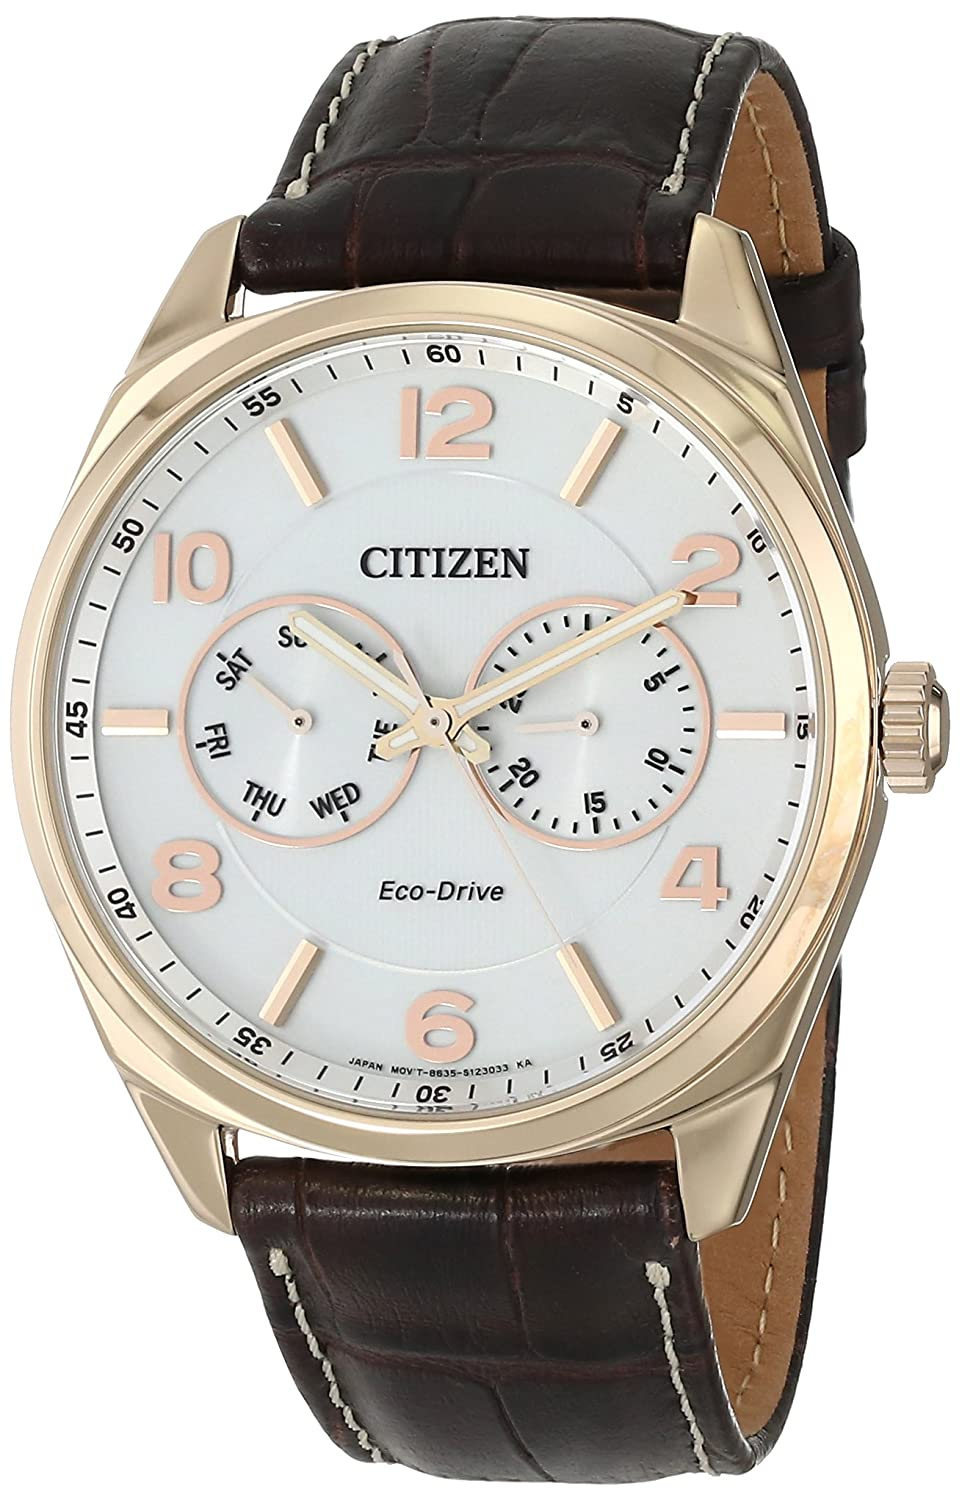 2b1ff6306 Amazon.com: Citizen Men's Eco-Drive Stainless Steel and Leather Watch,  AO9023-01A: Watches